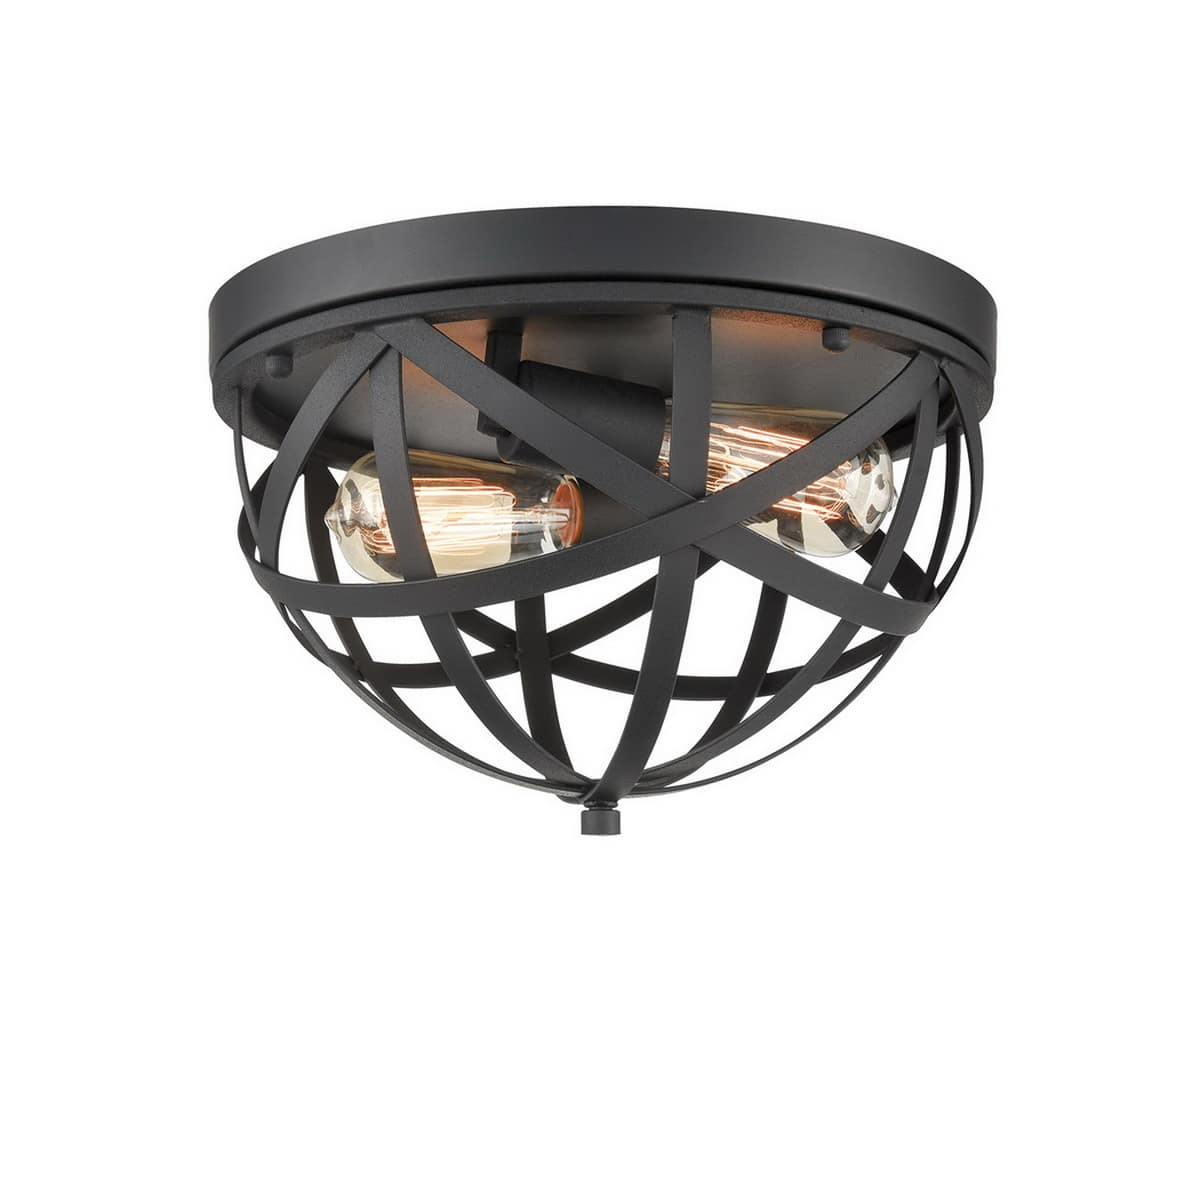 Industrial Black Dome Cage Ceiling Light-2 Light Fixture